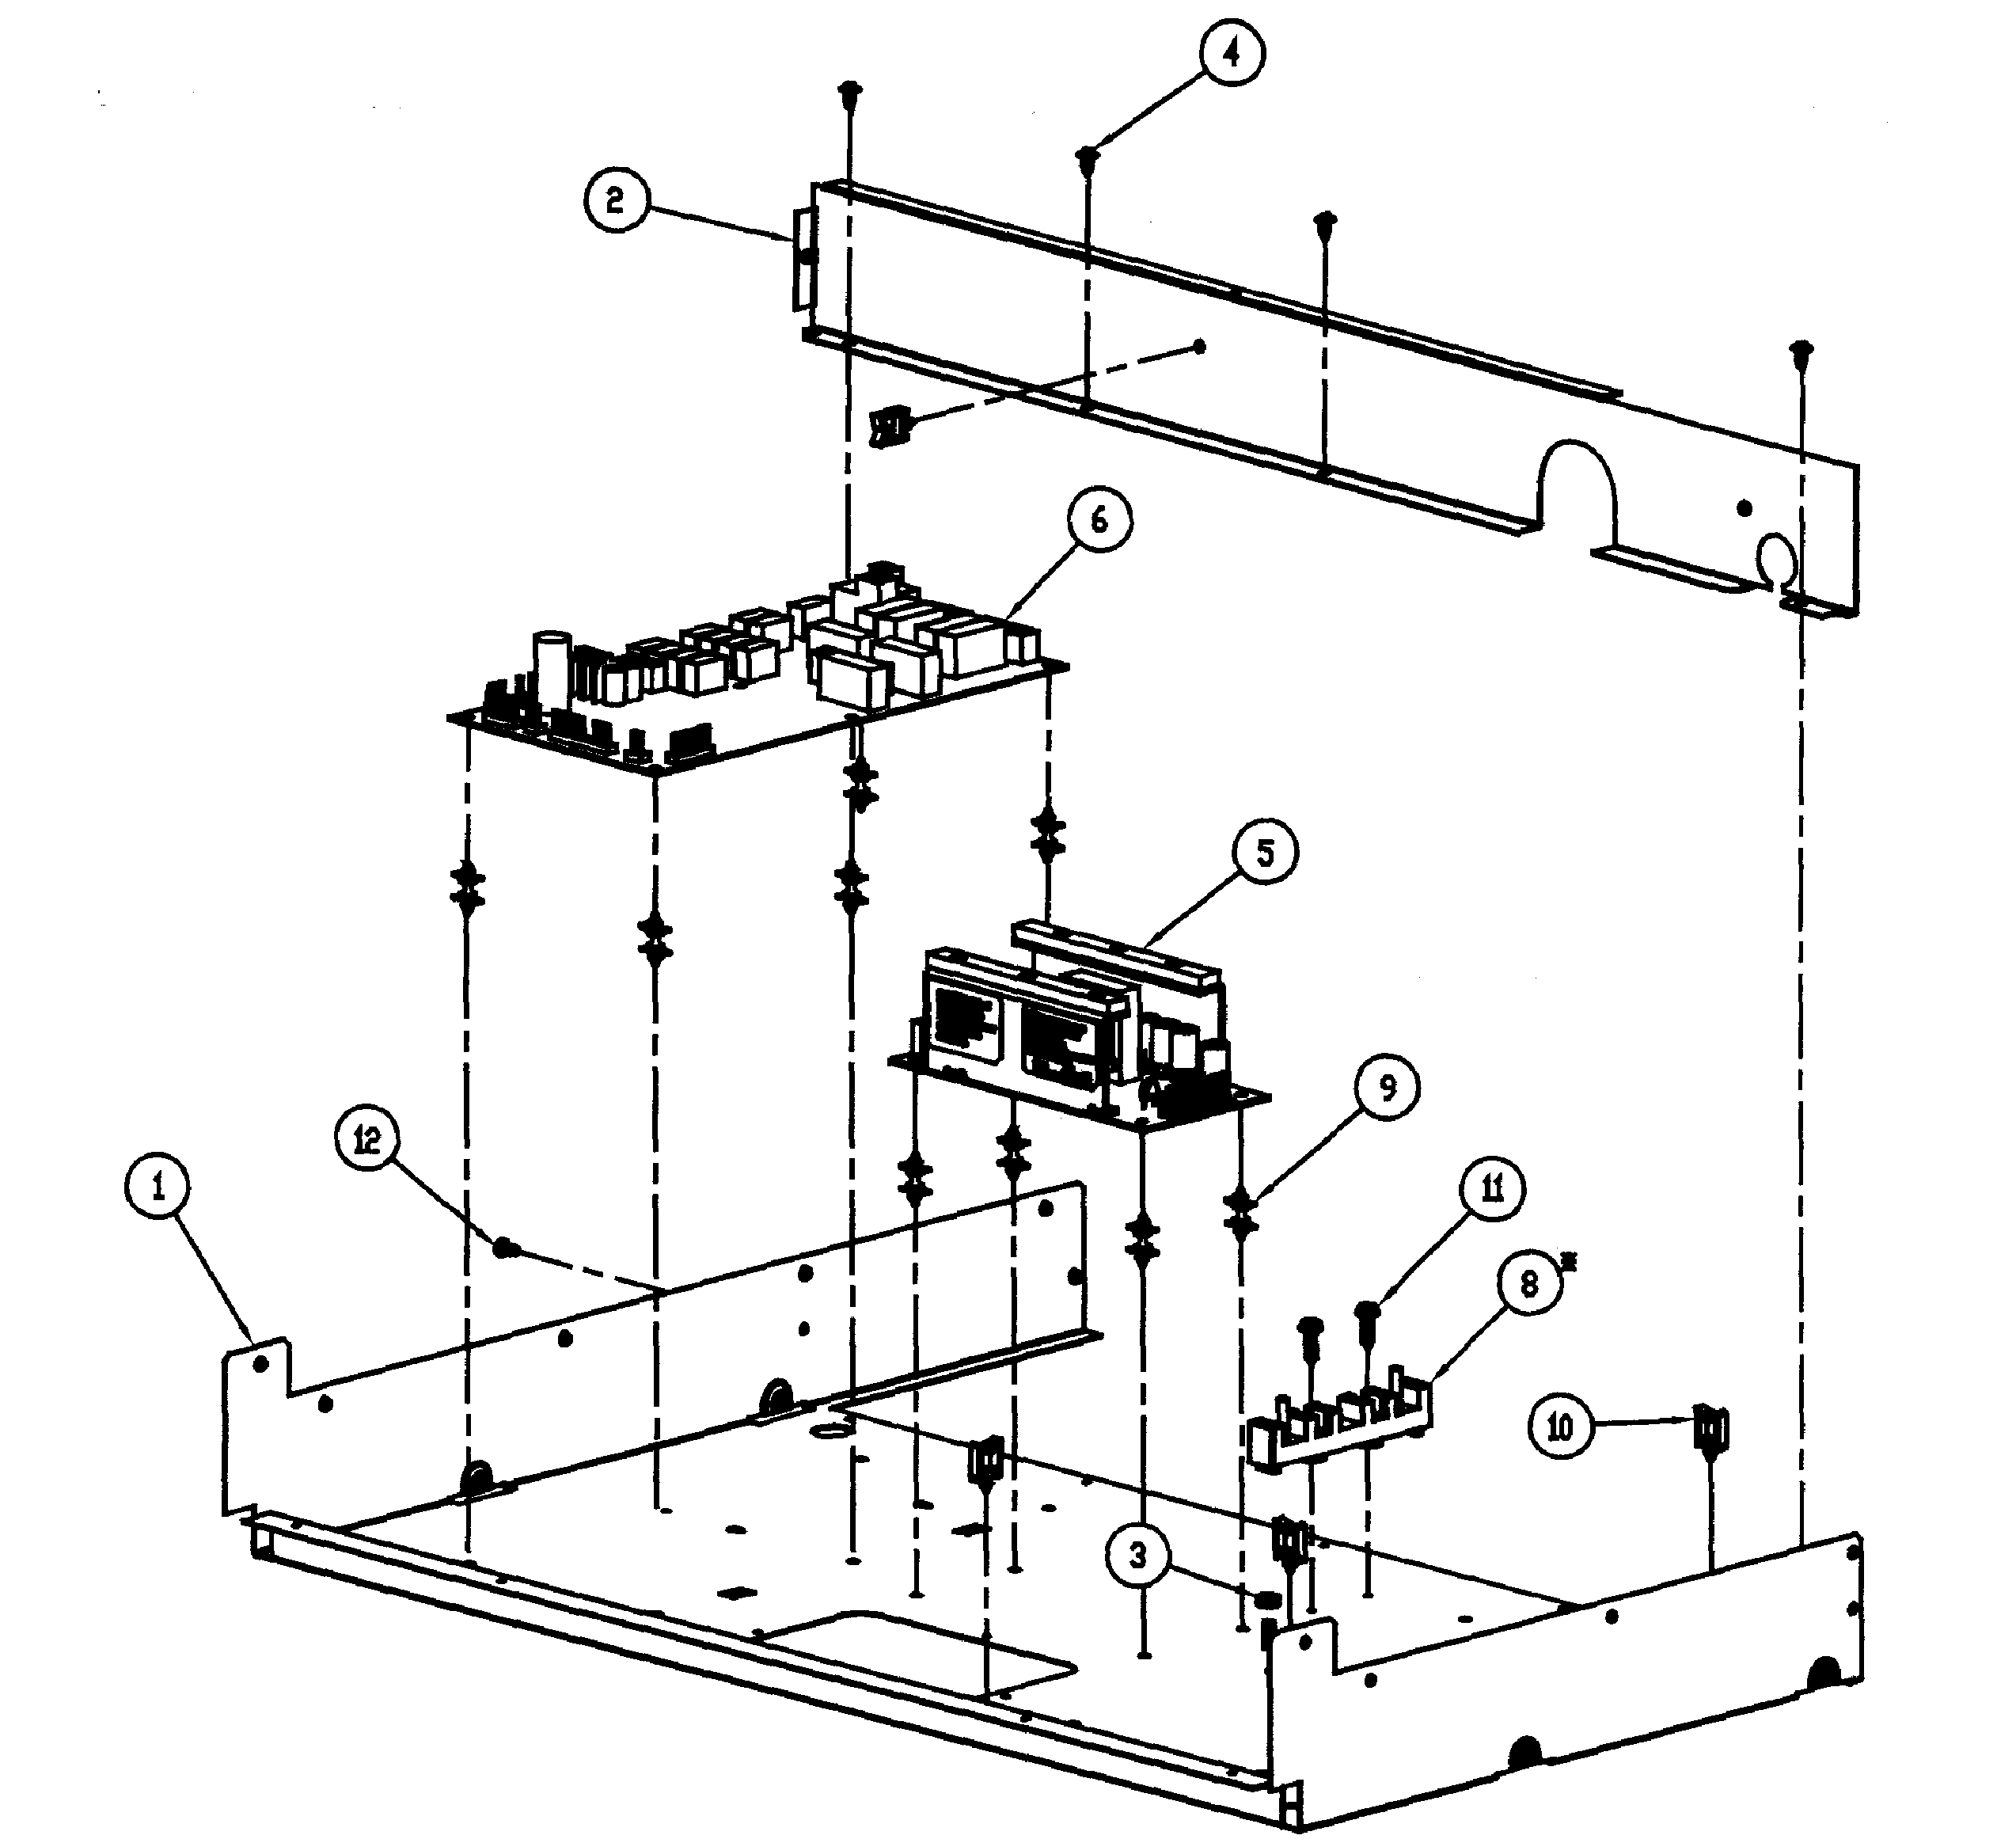 Dacor PO227GN chassis assy diagram